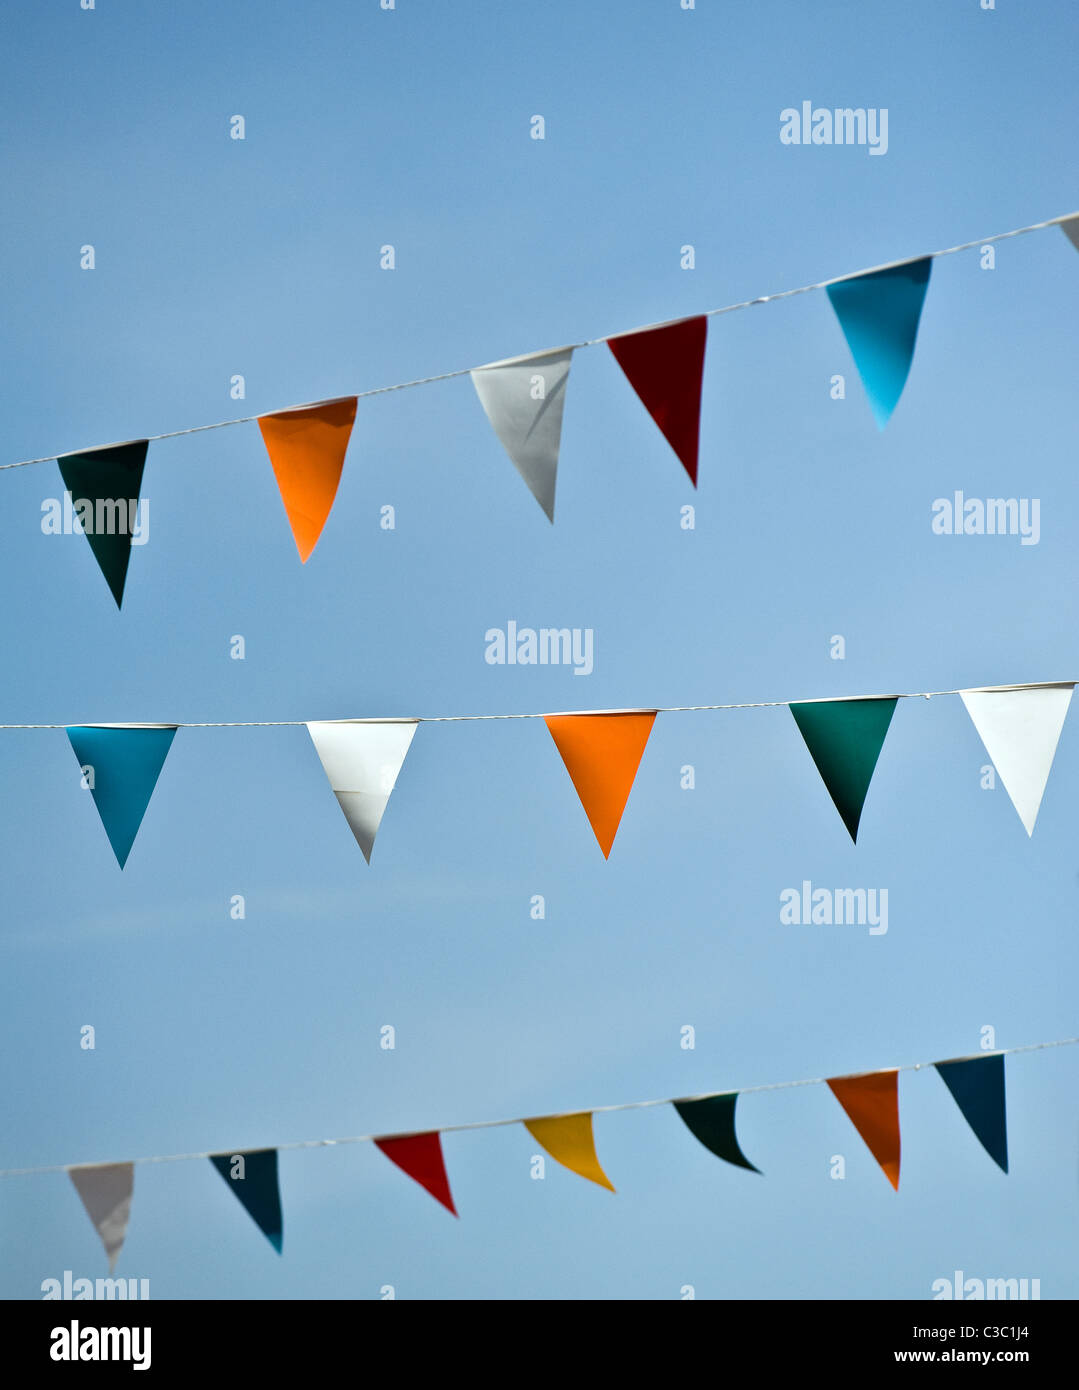 Colourful bunting against a blue sky. - Stock Image